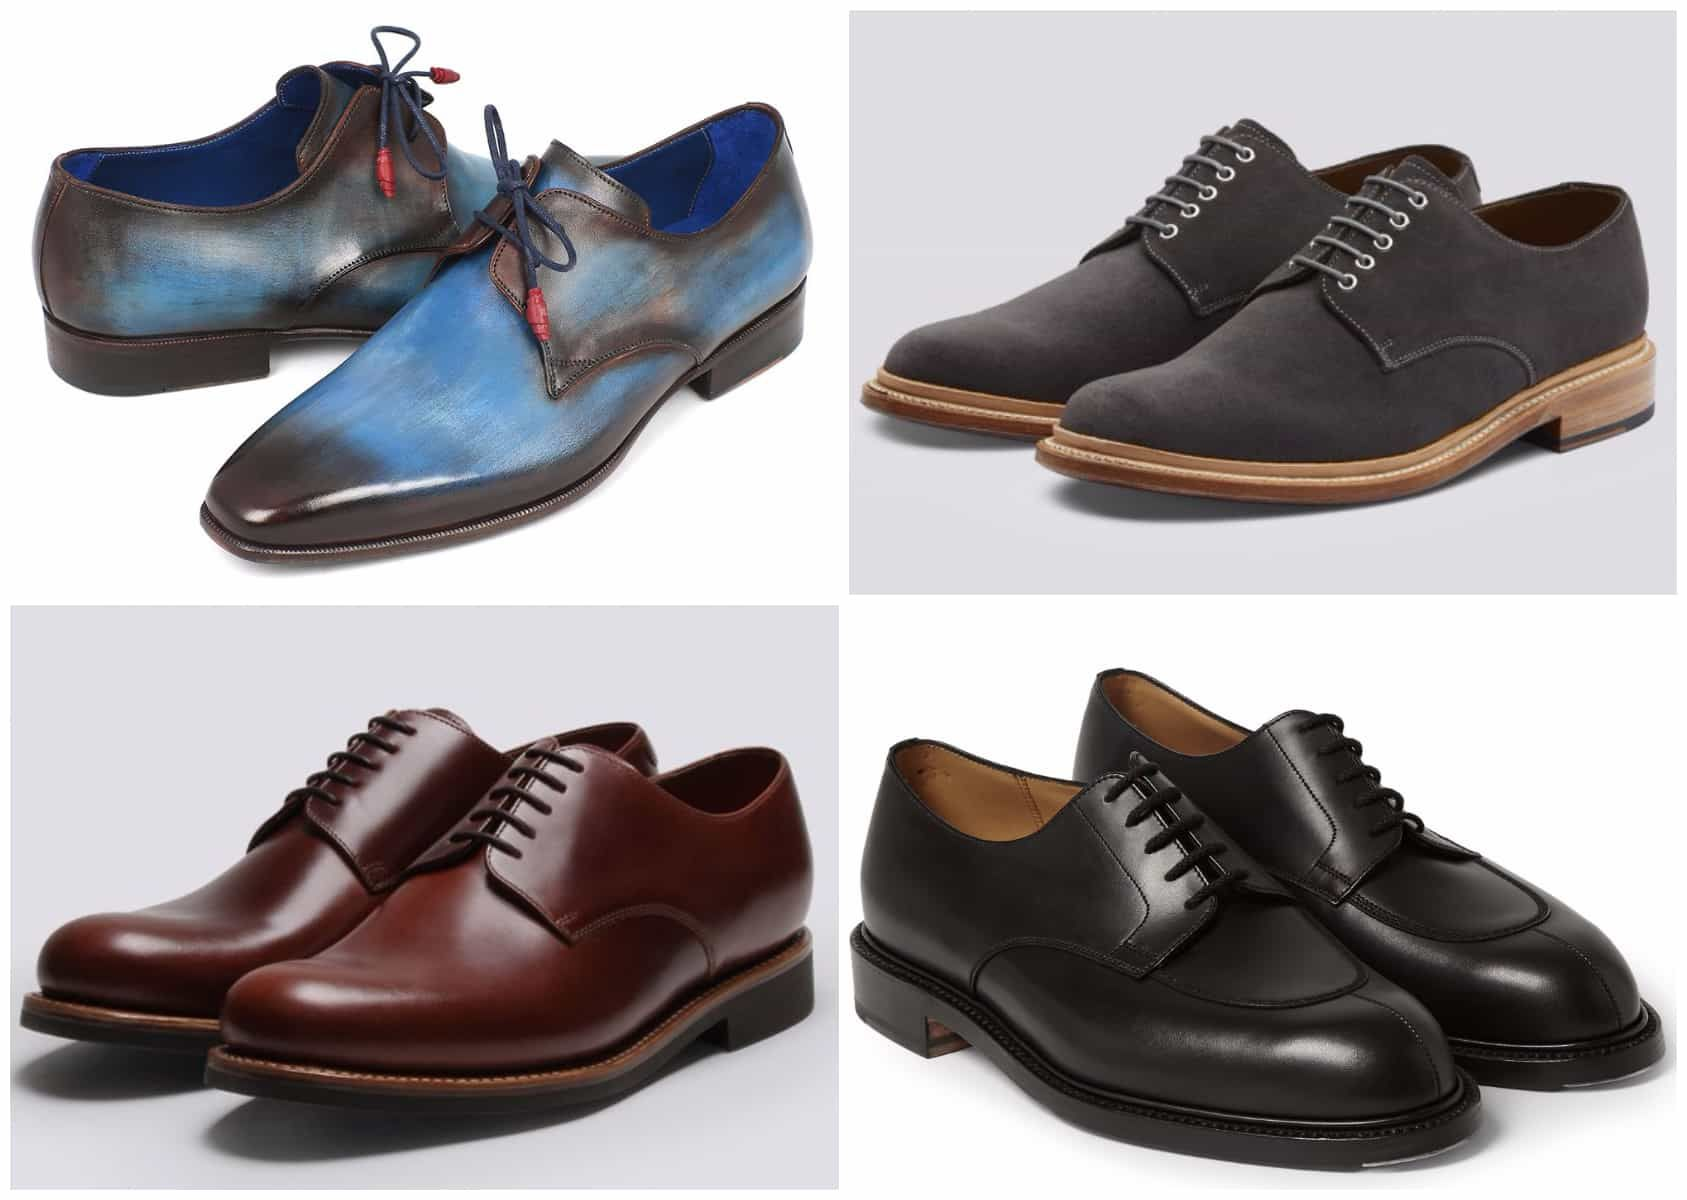 Derby Shoe Vs Oxford Vs Blucher Guide To Men S Shoe S When Where To Wear Each Mens Derby Shoes Adidas Outfit Shoes Derby Shoes